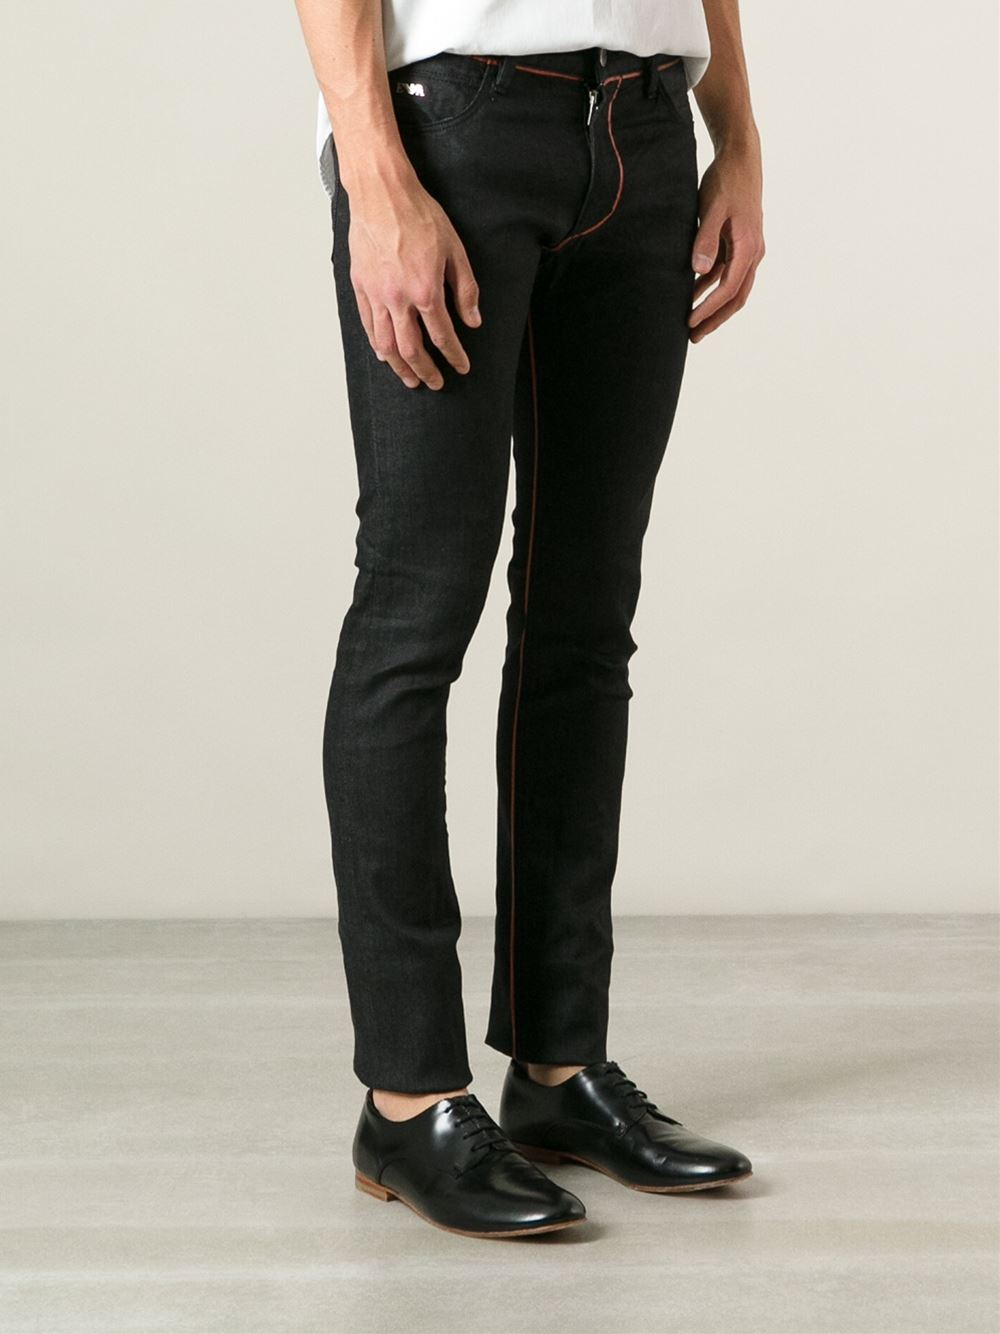 27924d2b Emporio Armani Black Skinny Jeans for men